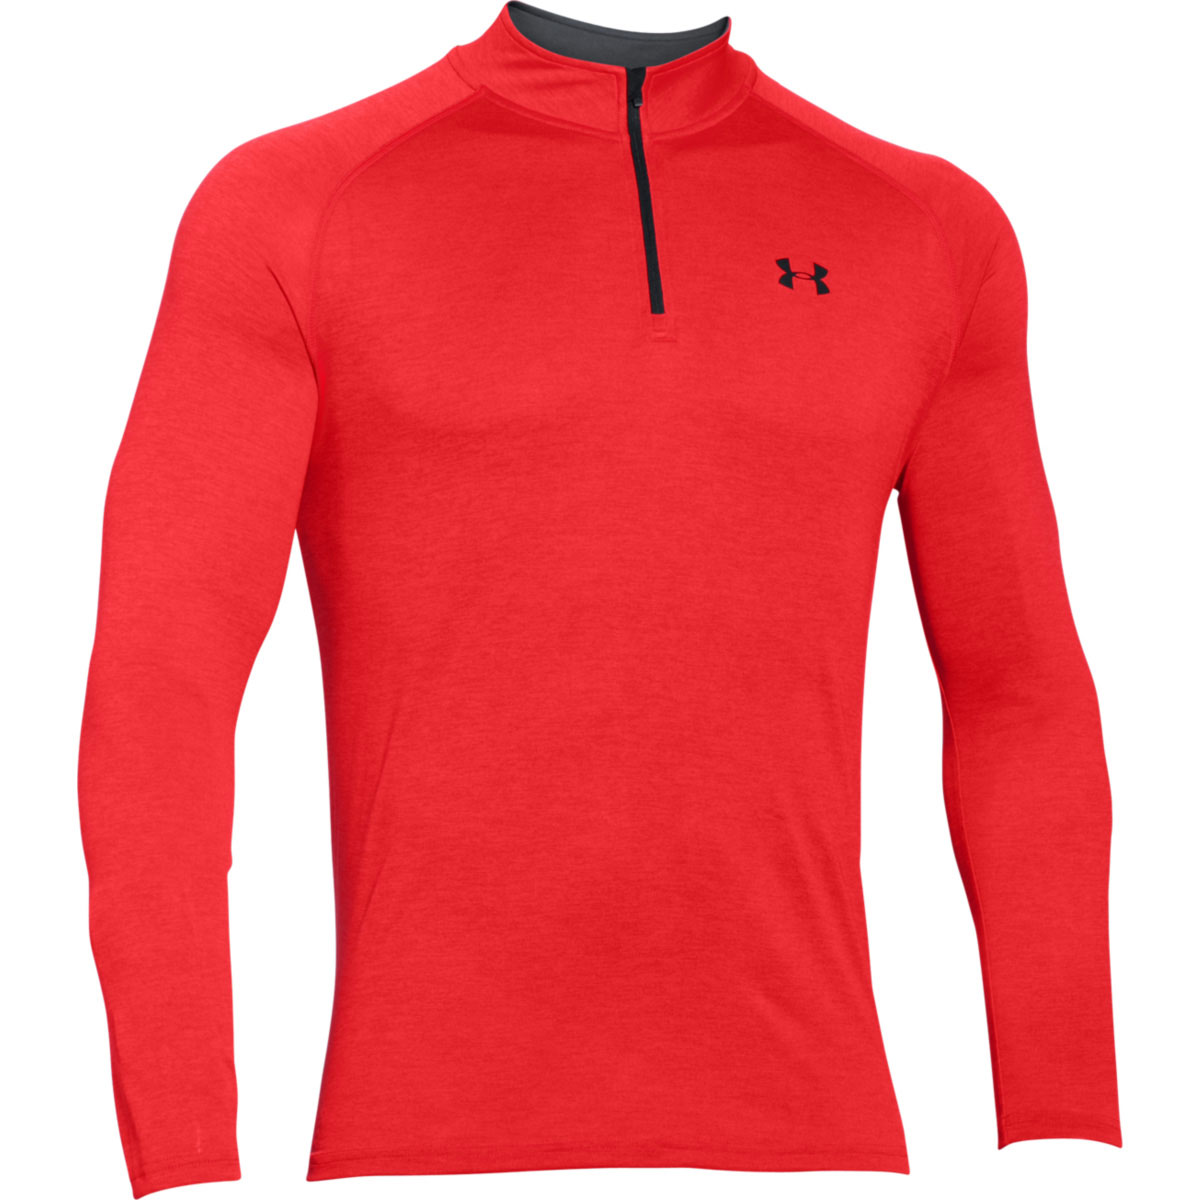 Under-Armour-Mens-UA-Tech-1-4-Zip-Long-Sleeve-Top-Workout-Layer-27-OFF-RRP thumbnail 73